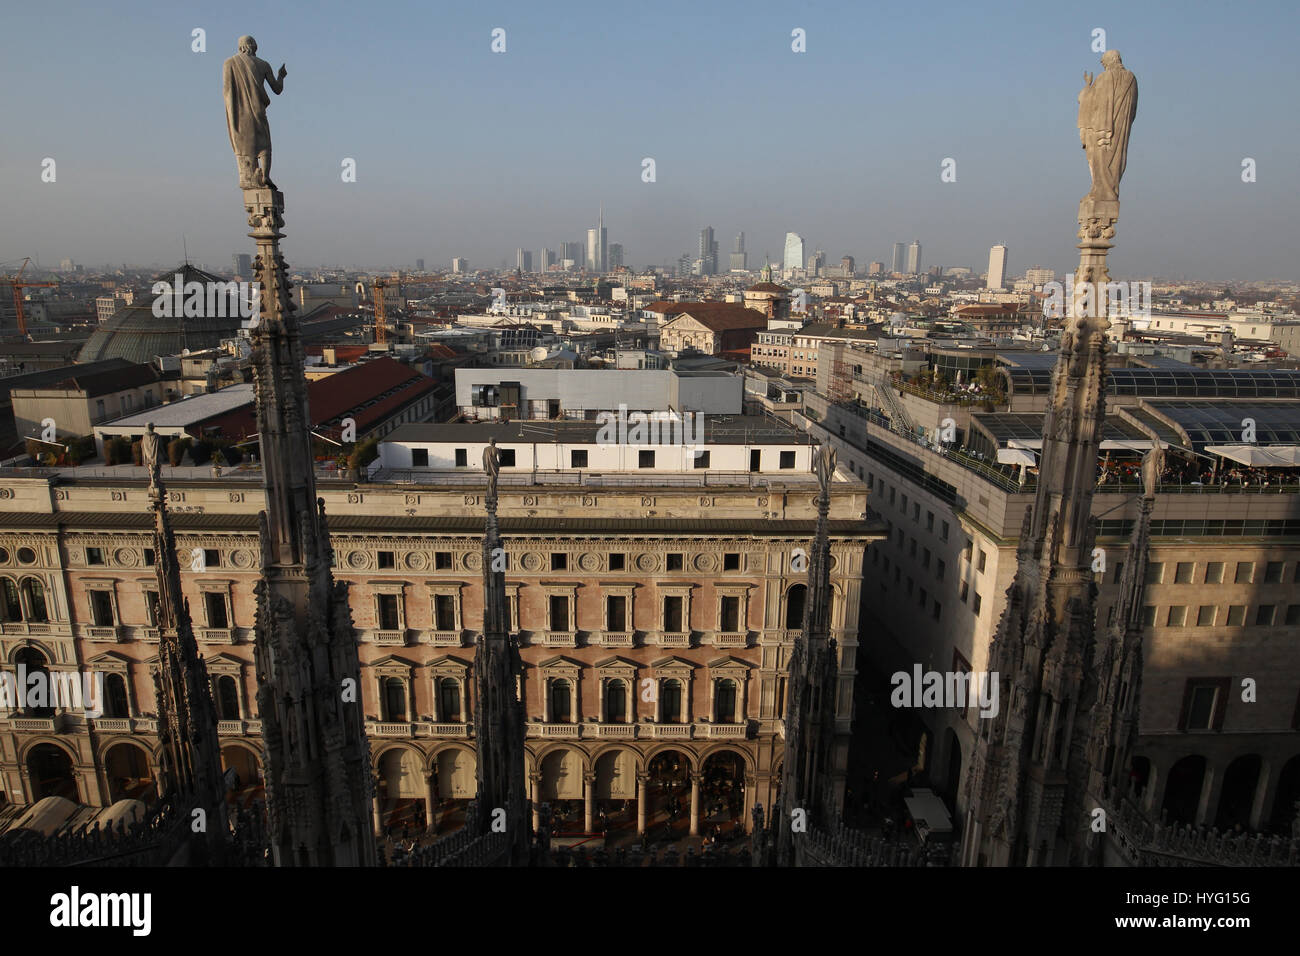 View of Milan from the roof of the Duomo di Milano. The Gothic Cathedral is the largest church in Italy. - Stock Image